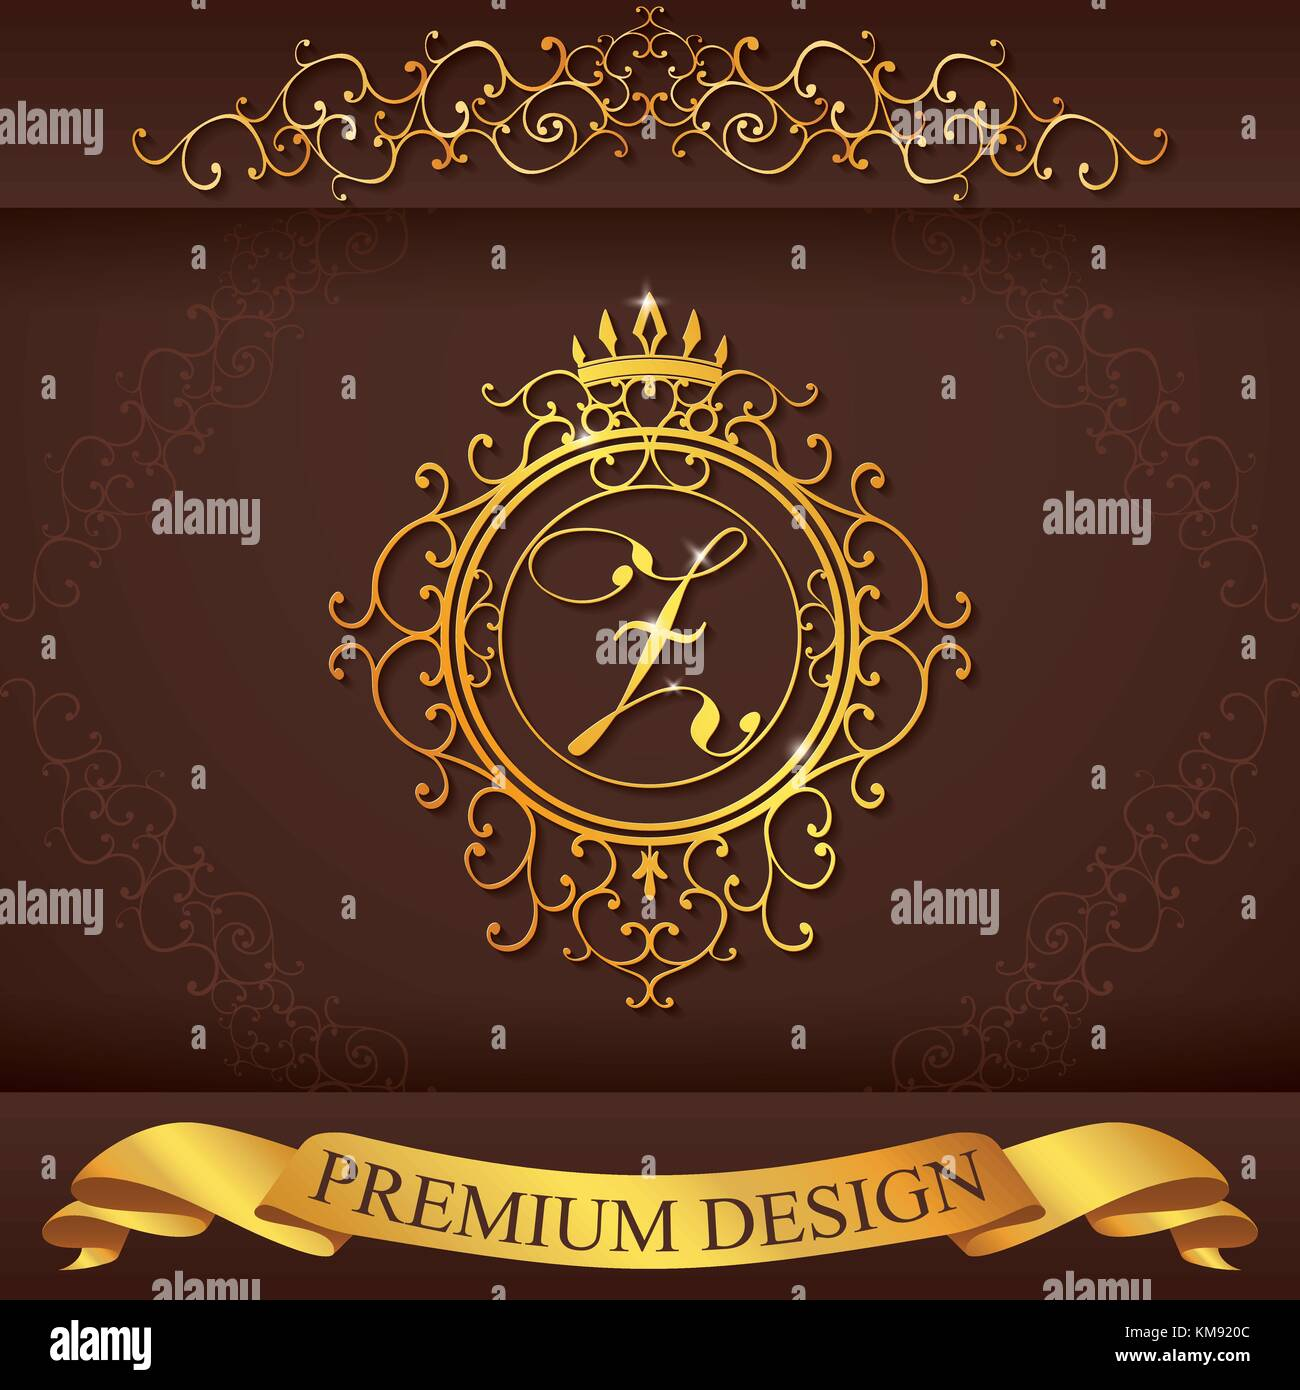 Letter Z. Luxury Logo Template Flourishes Calligraphic Elegant Ornament  Lines. Business Sign, Identity For Restaurant, Royalty, Boutique, Hotel,  Heral